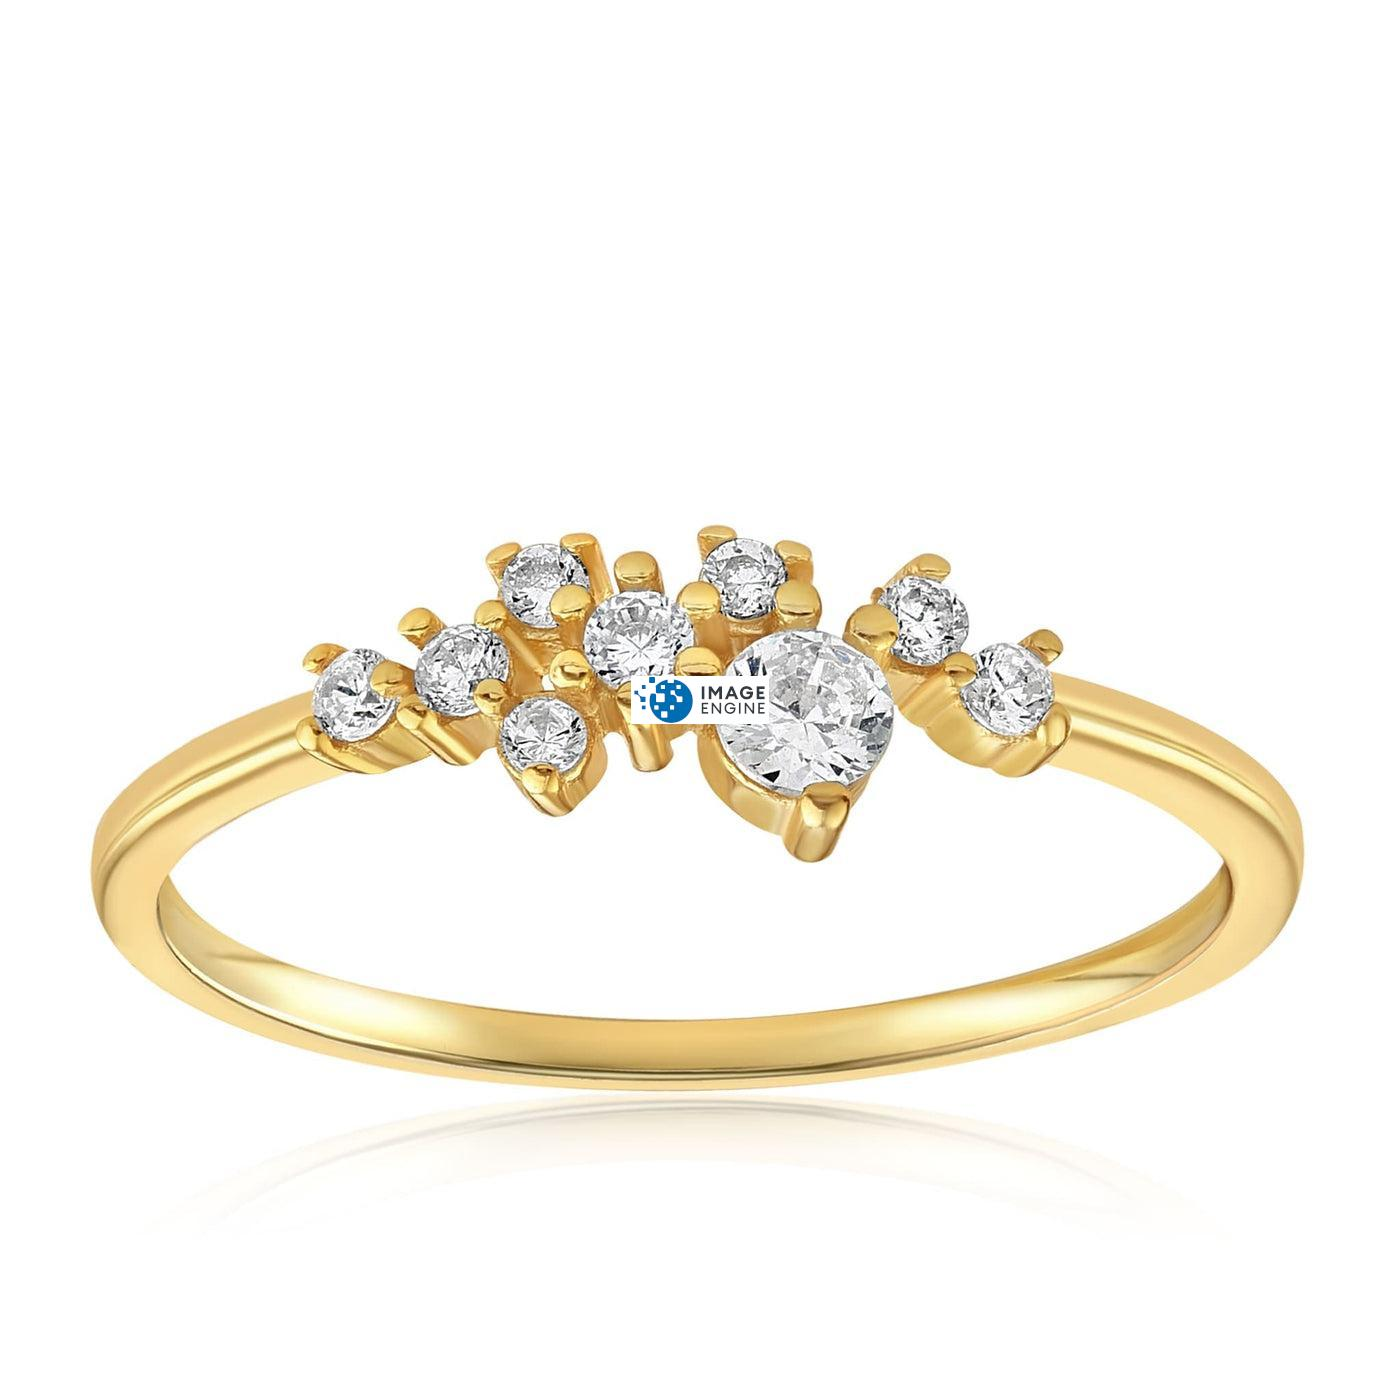 Sasha Sparkle Ring - Front View Facing Up - 18K Yellow Gold Vermeil